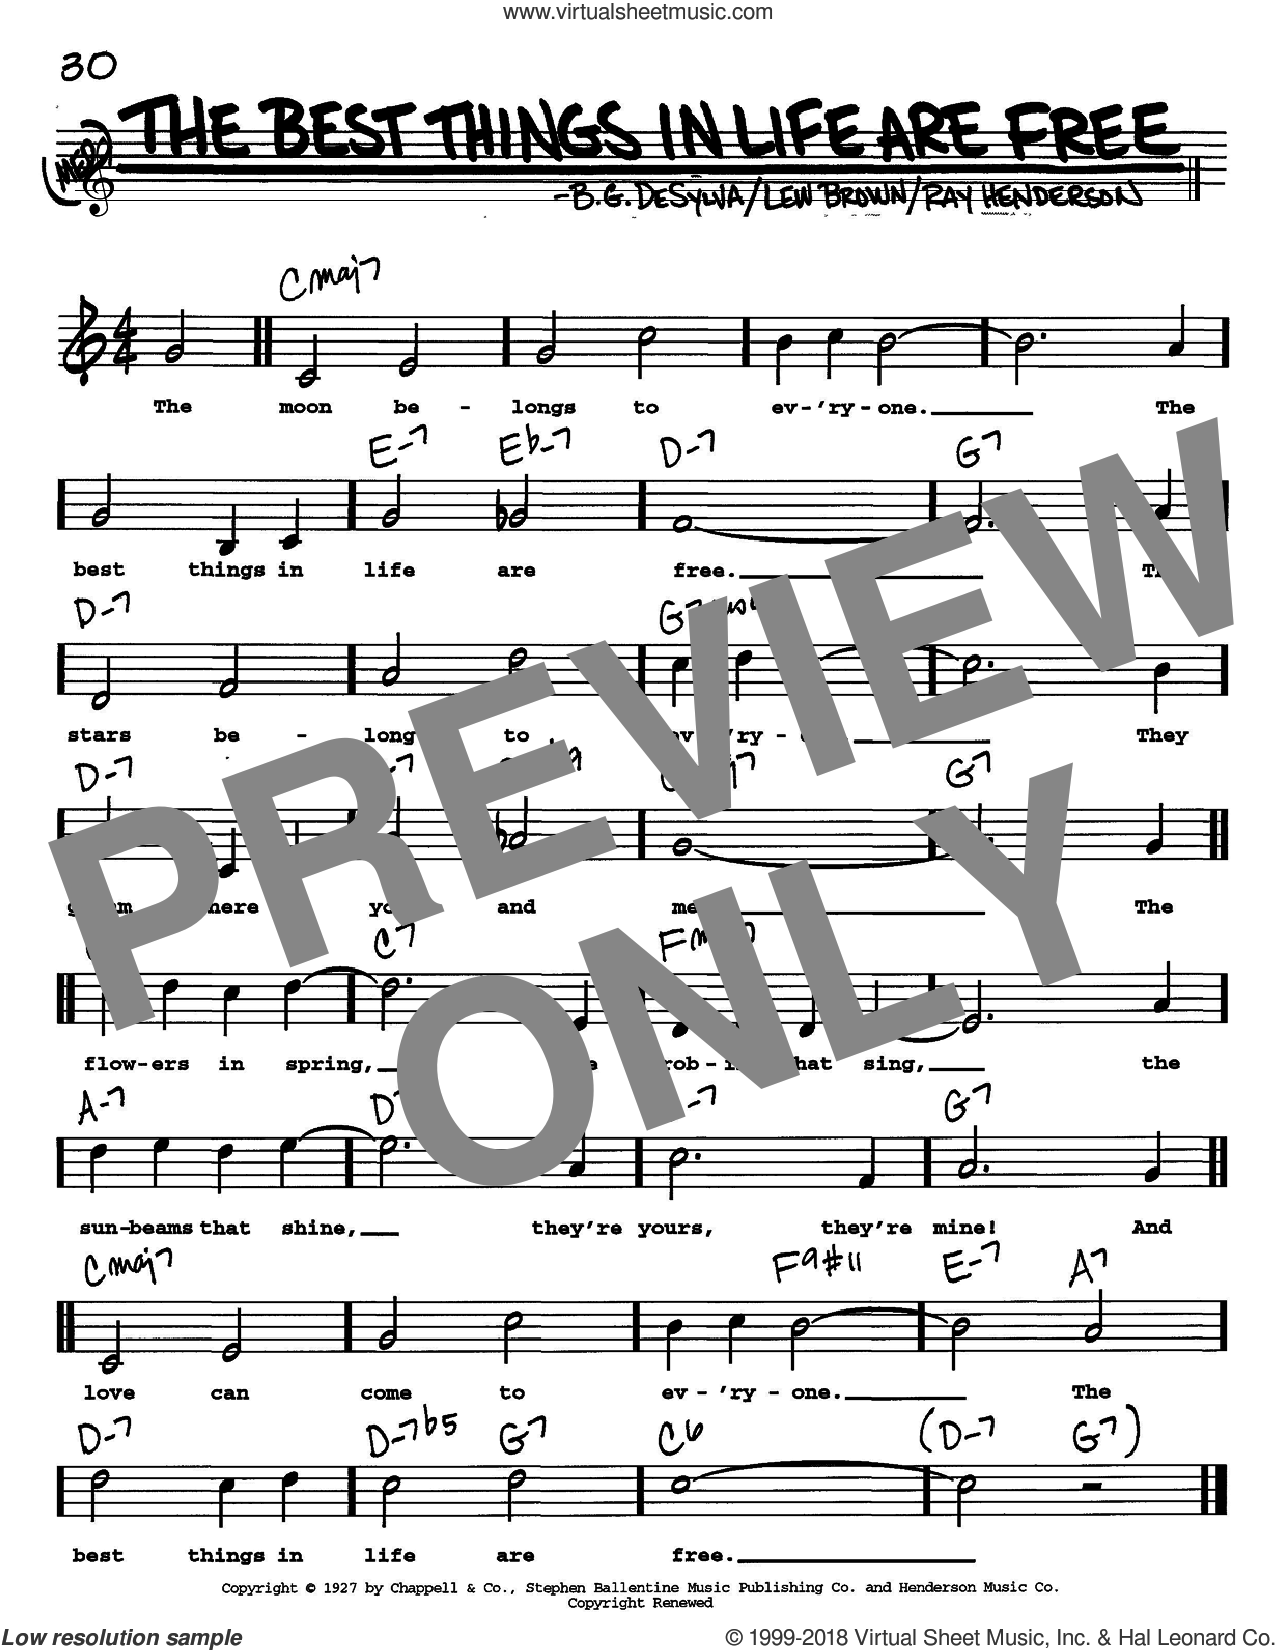 The Best Things In Life Are Free sheet music for voice and other instruments (Vocal Volume 2) by Ray Henderson, Buddy DeSylva and Lew Brown. Score Image Preview.